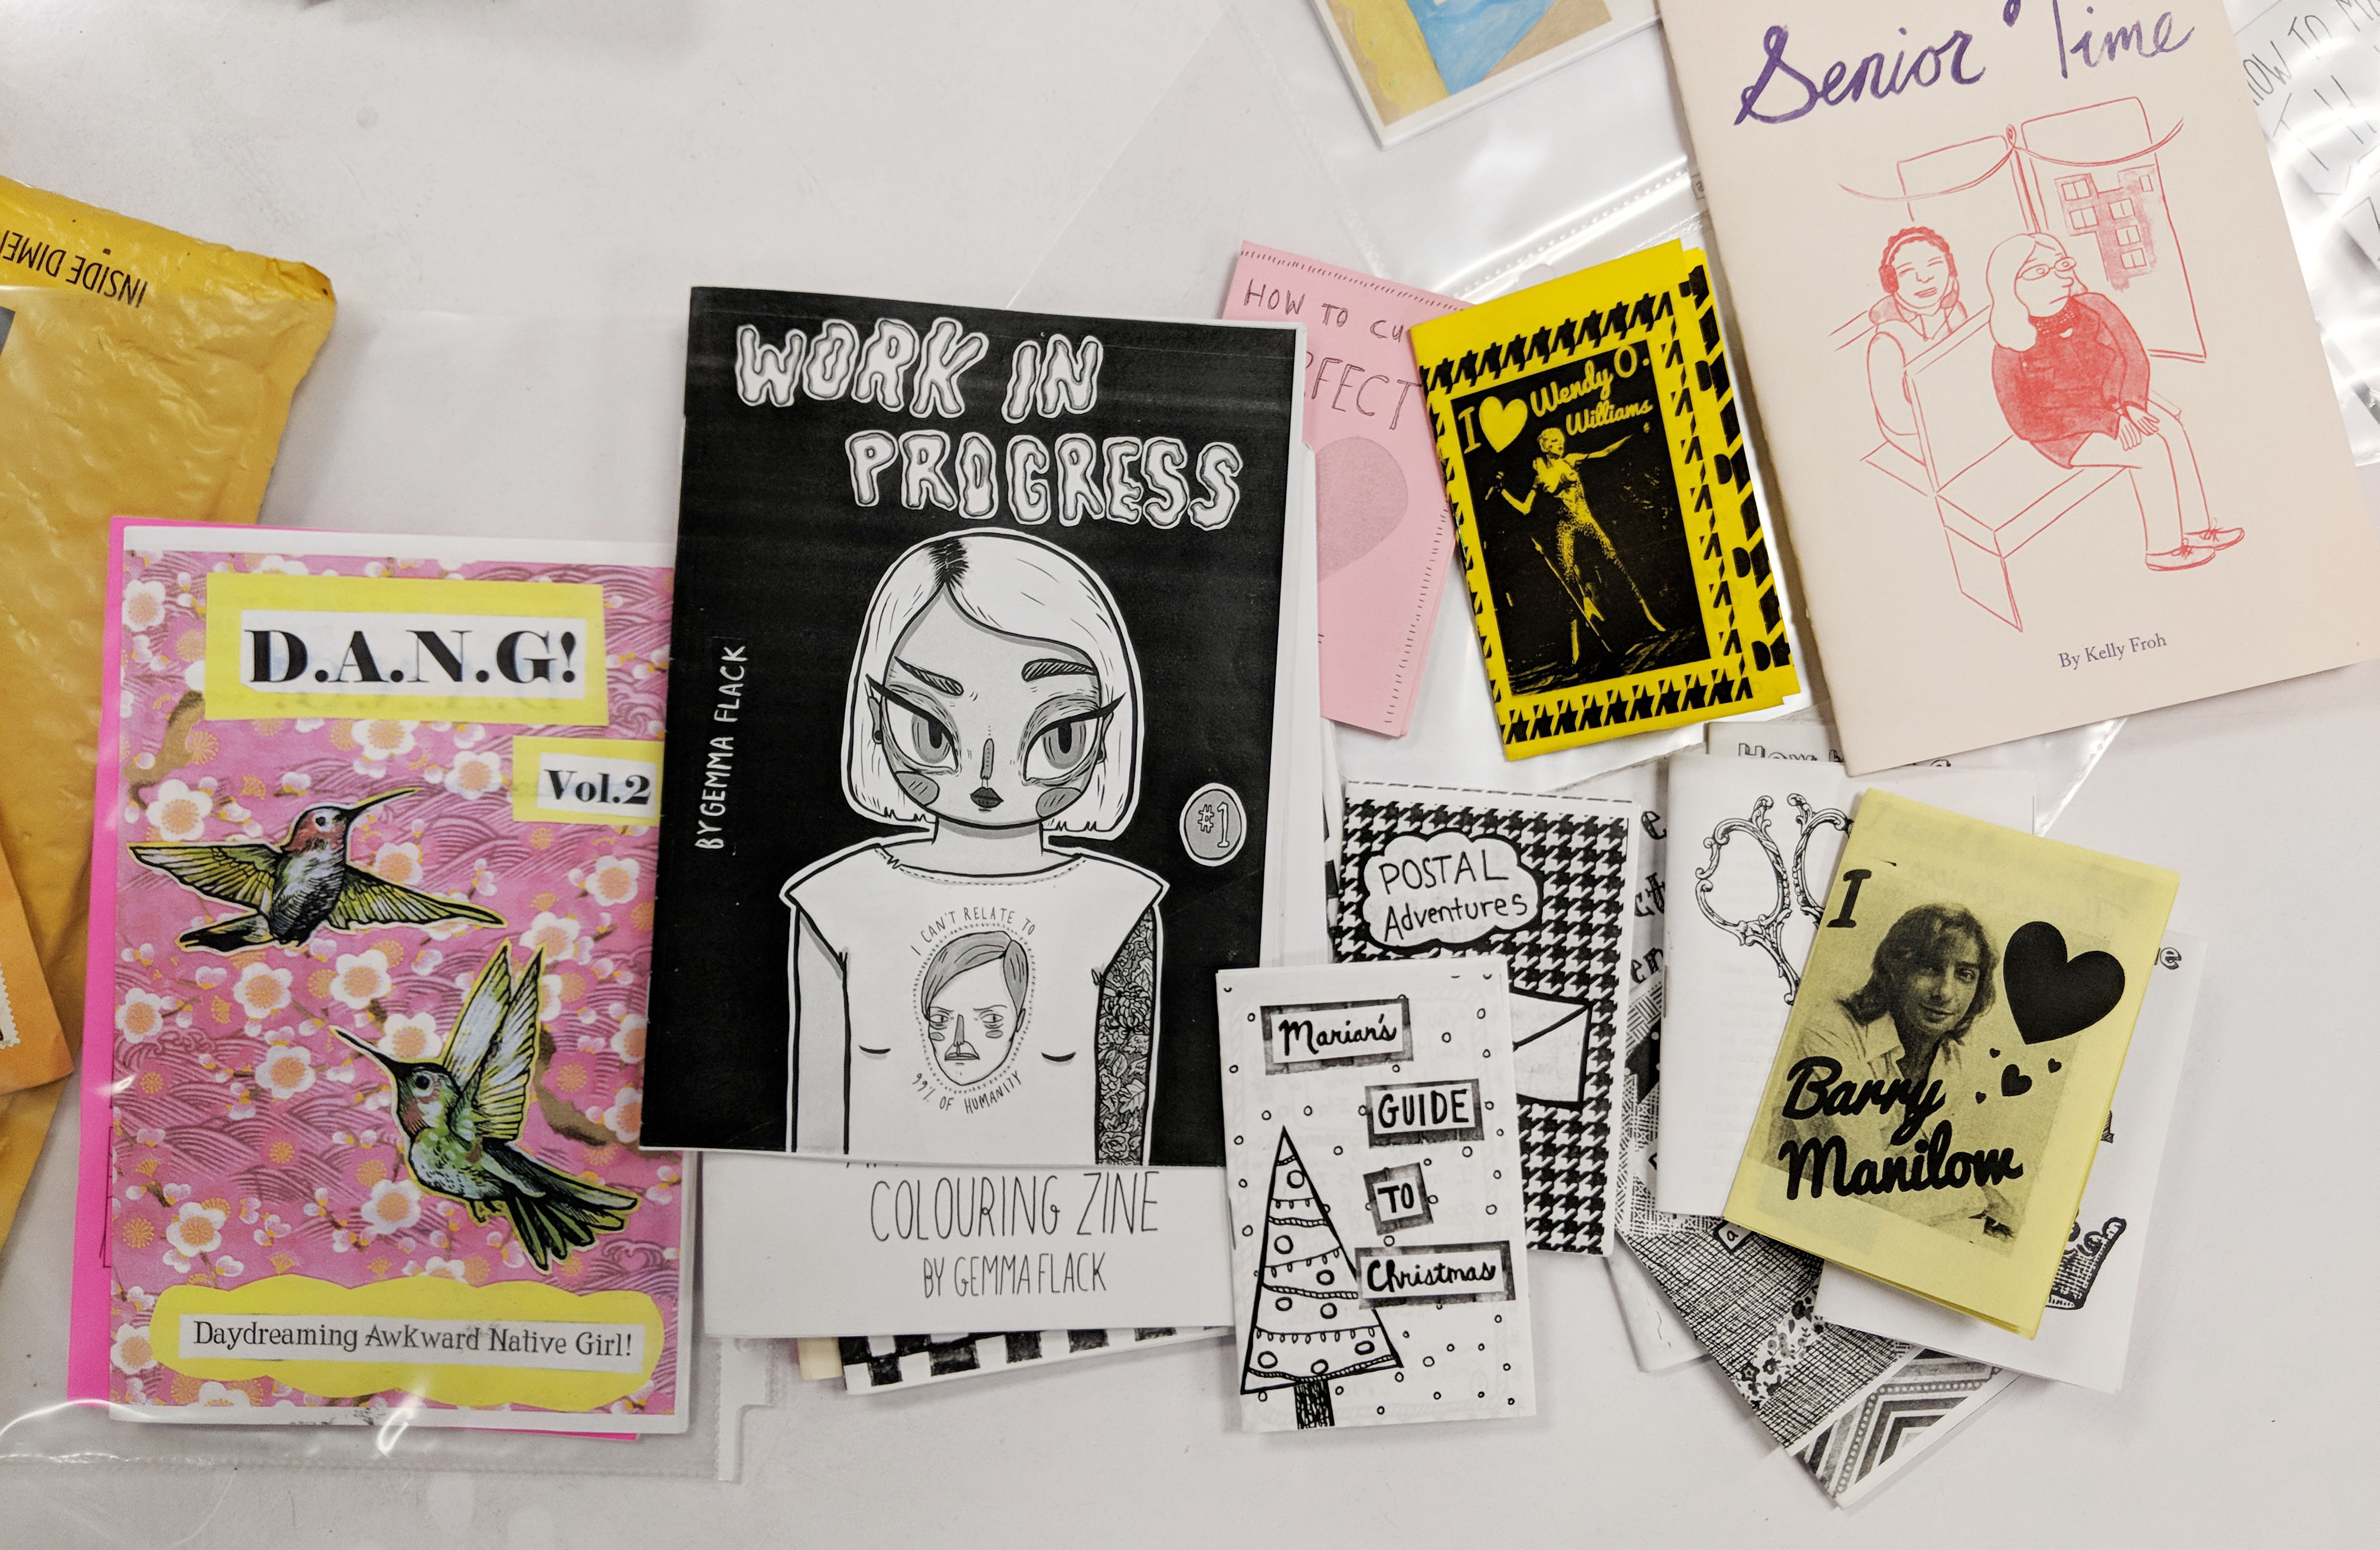 Zines made by participants of the workshop